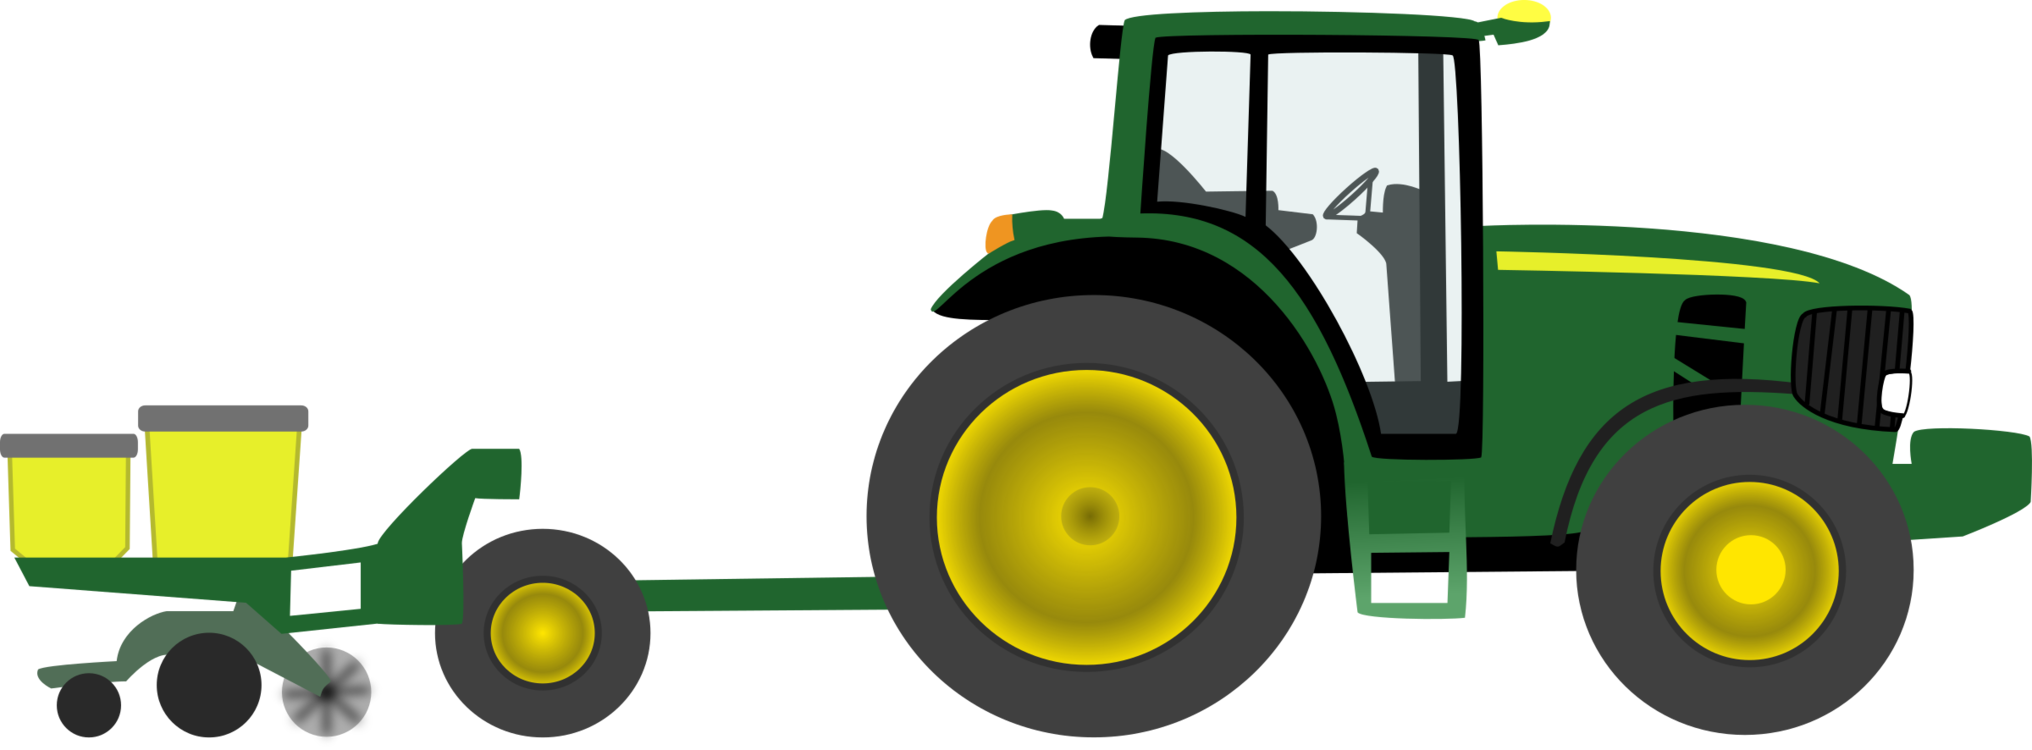 John deere clipart farm equipment. Tractor agriculture free commercial